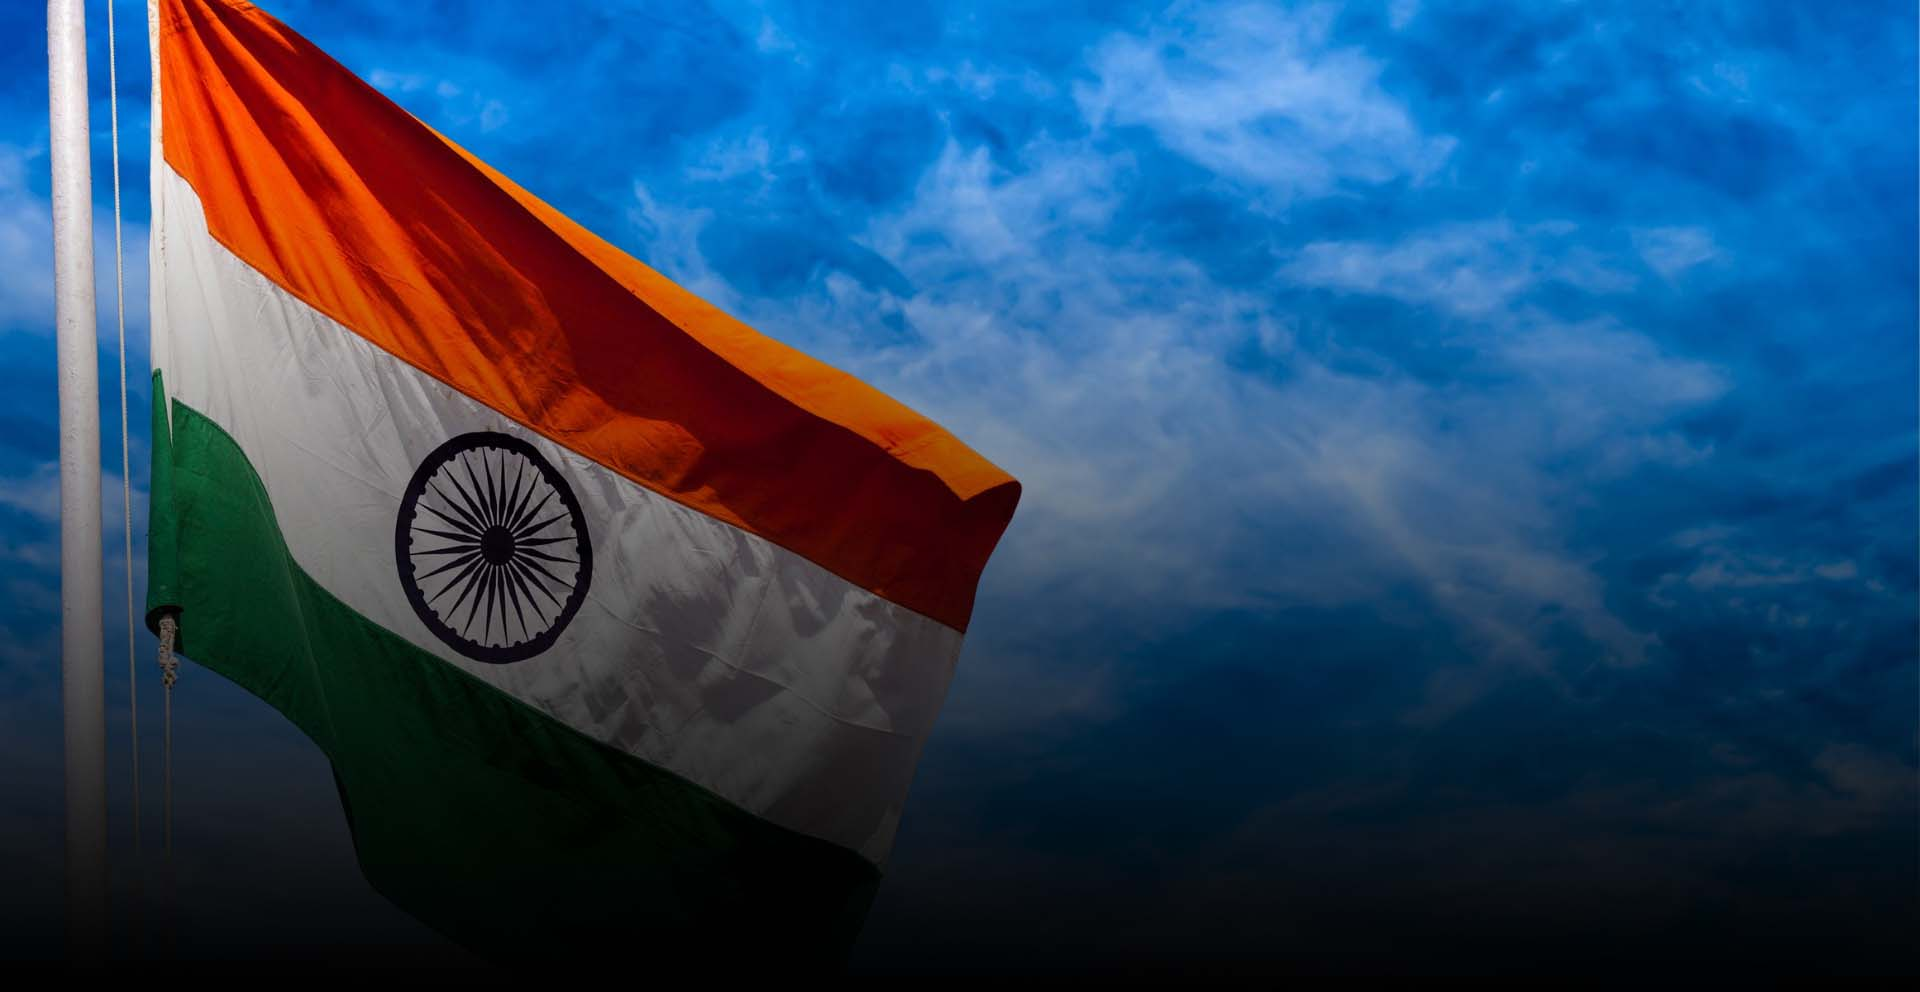 How Will India Celebrate Independence Day This Year Amid Covid-19?